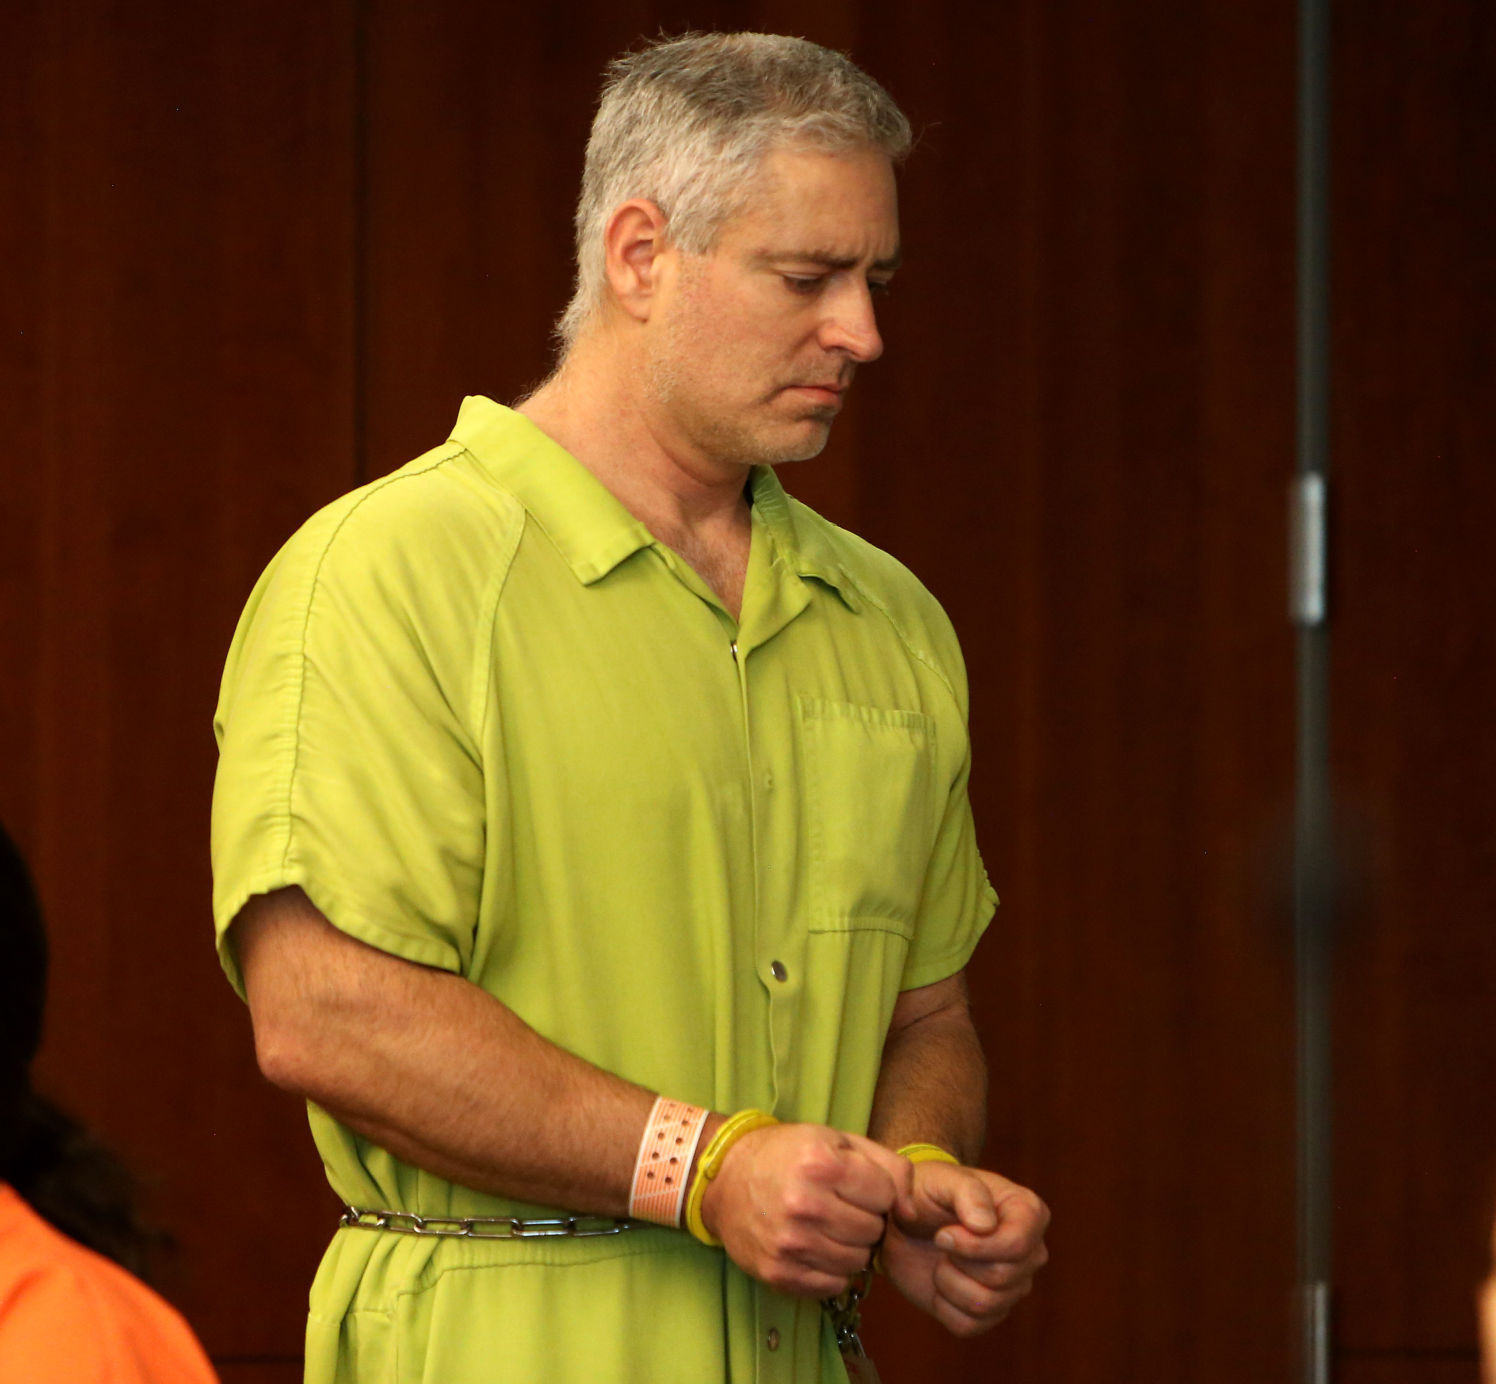 Doctor Pleads Guilty After Importing Deca Durabolin